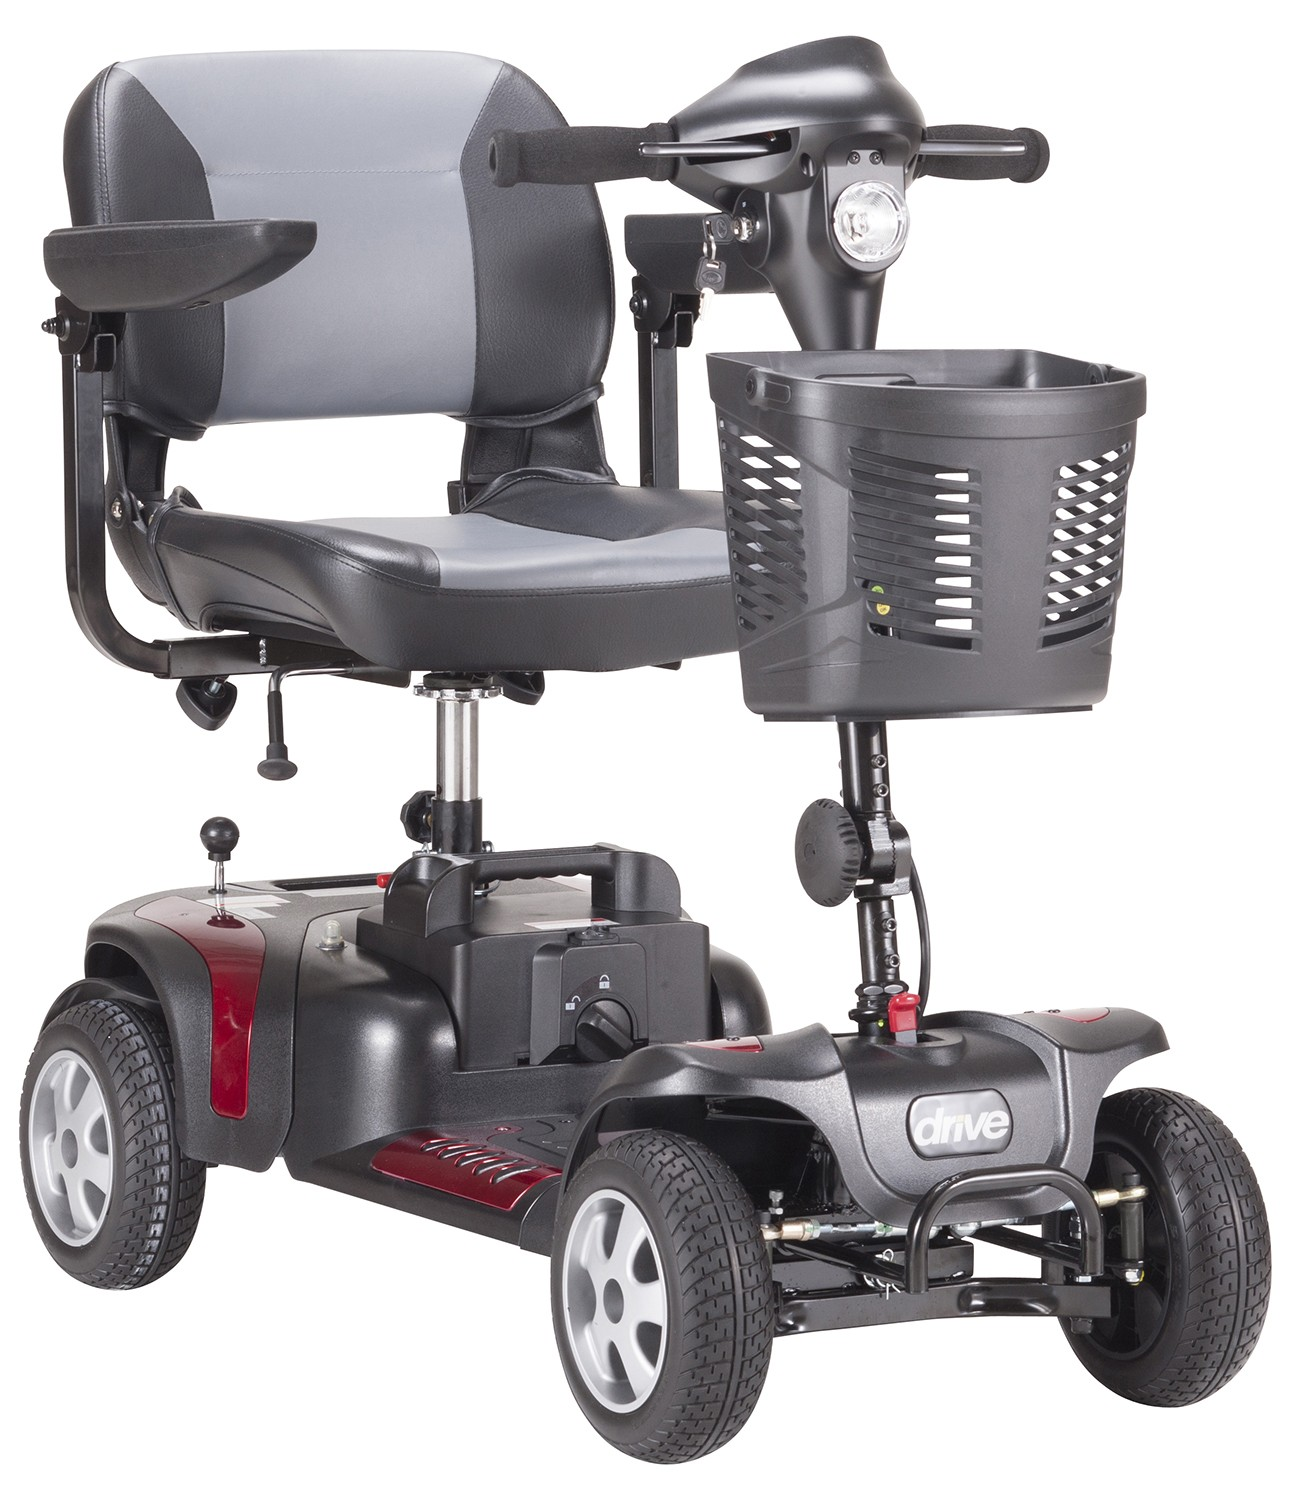 Phoenix hd4 4 wheel heavy duty travel scooter for Motorized carts for seniors